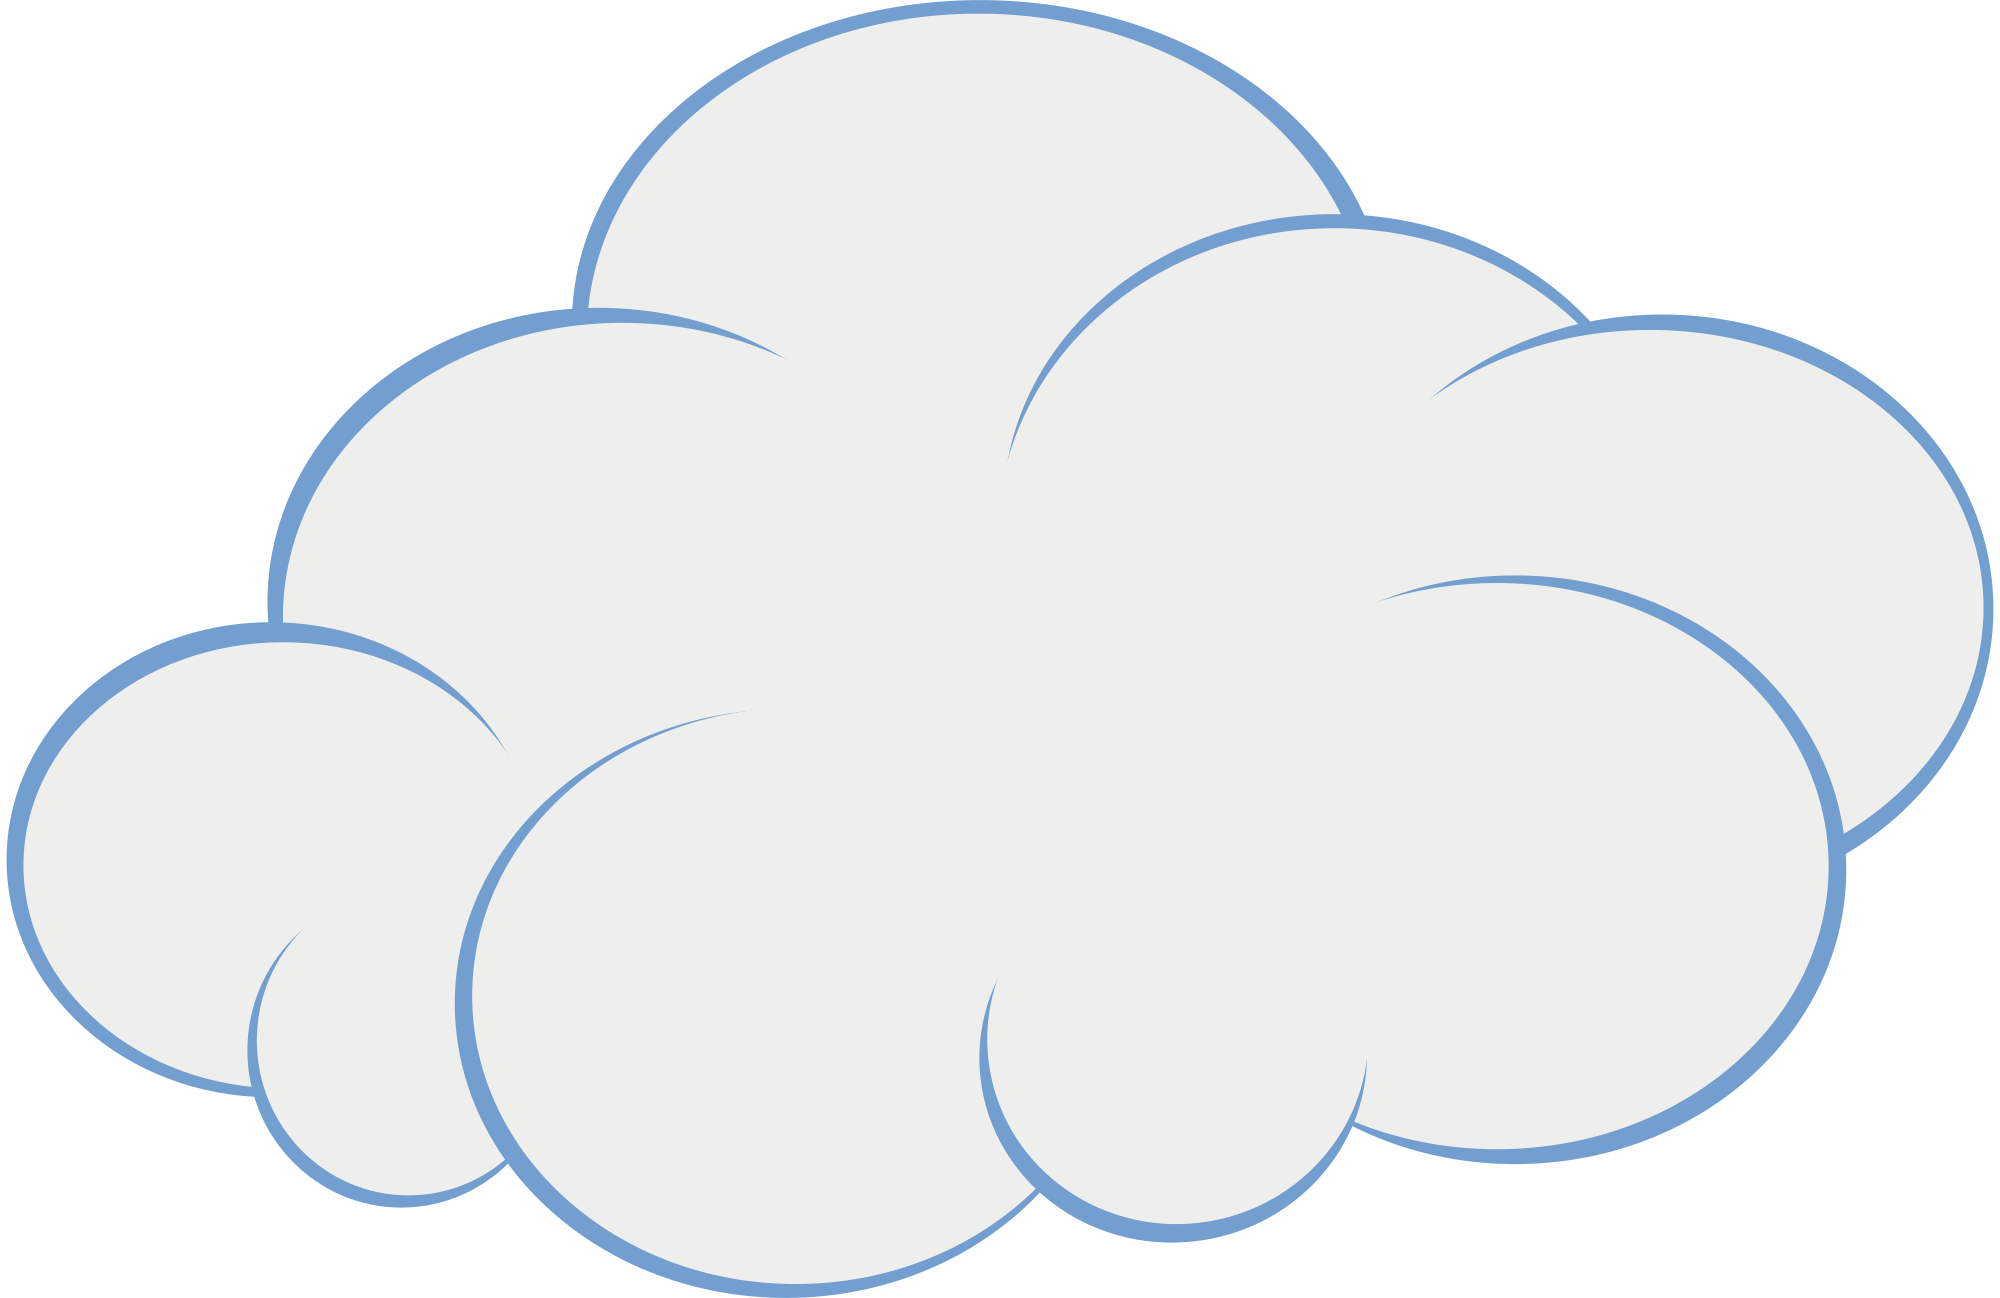 Cloud puffy. Clipart transparent